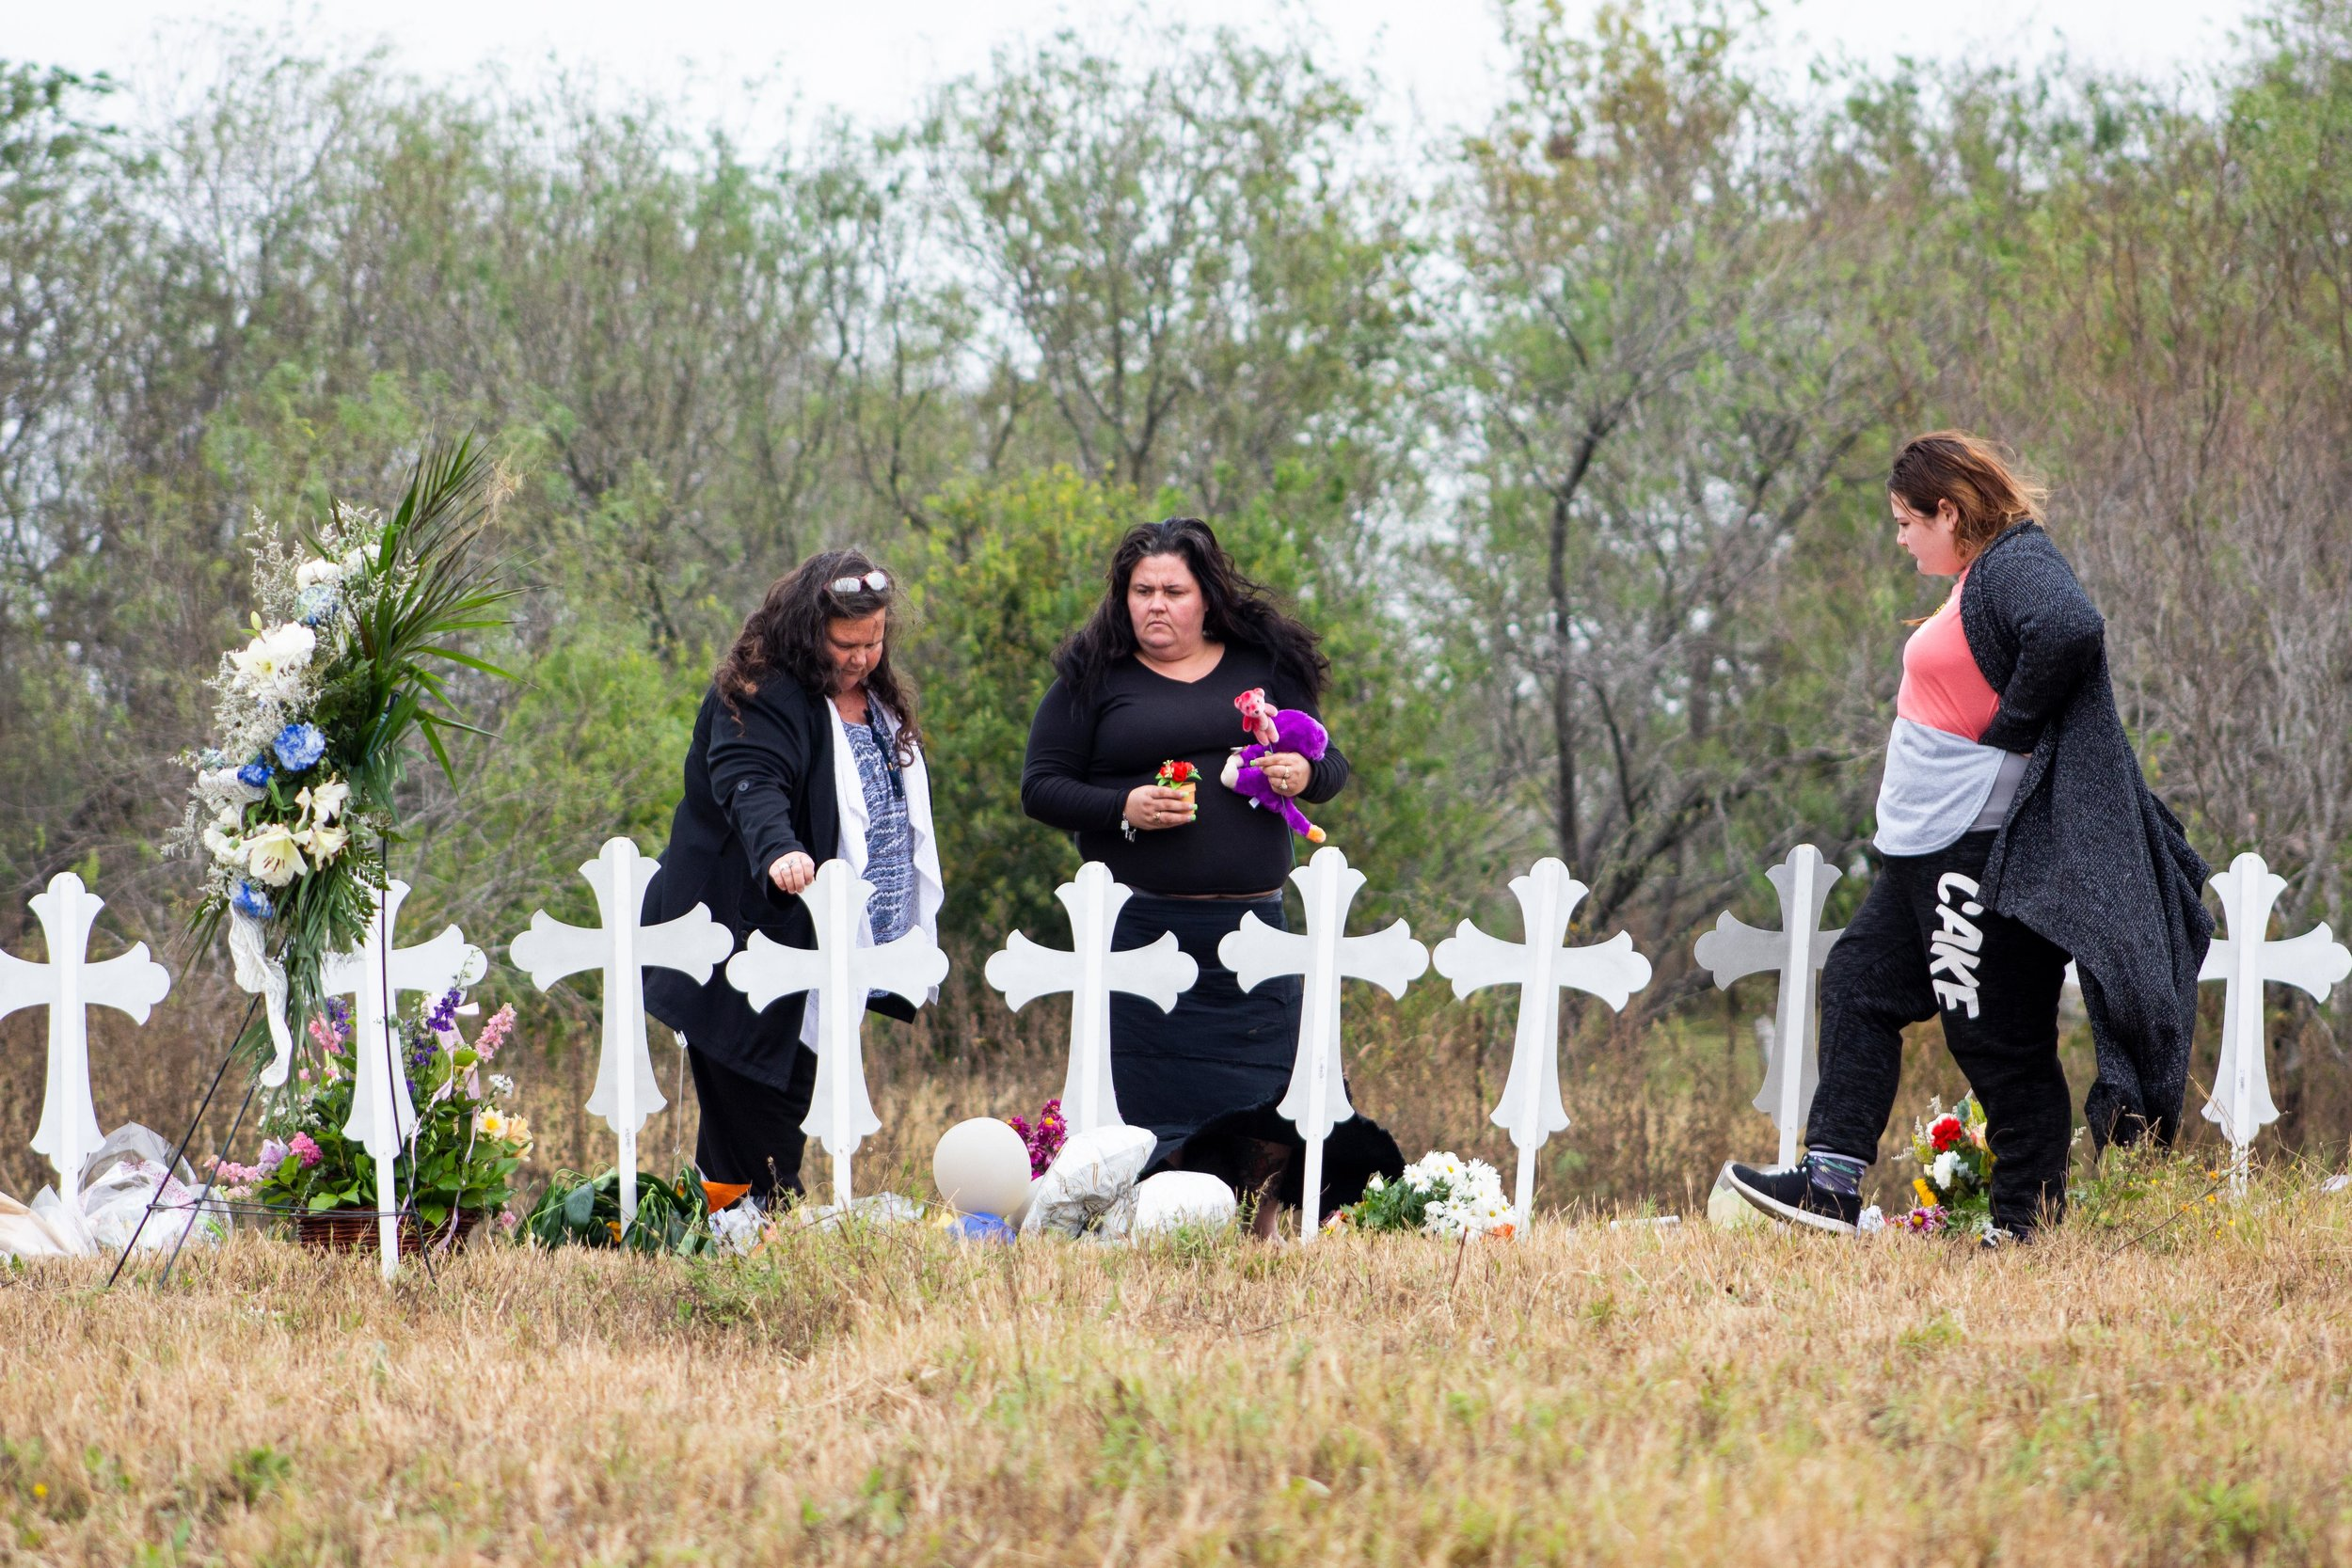 Alison Gould (right) visits a site of 26 metal crosses with her mother Jodi Gould (middle). The crosses represent the 26 people killed at the First Baptist Church of Sutherland Springs when a gunman opened fire on Nov. 5, 2017.